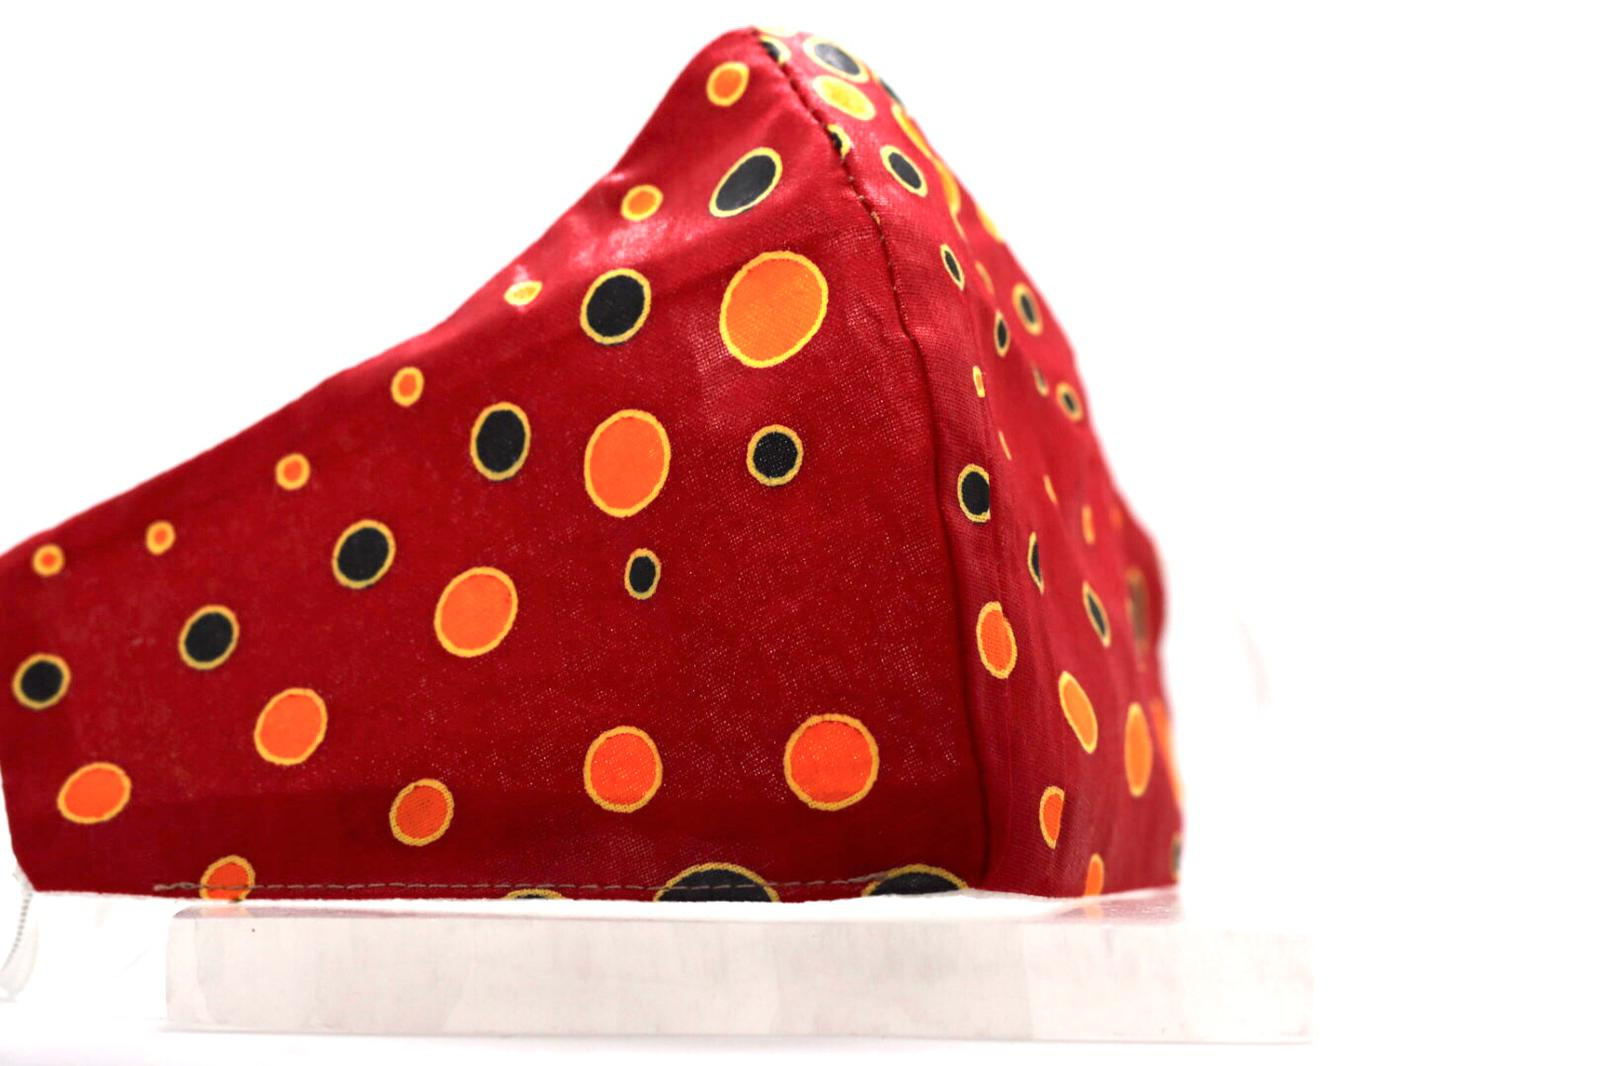 Printed Pepper Red, Yellow circular Mask Kind Shop 3